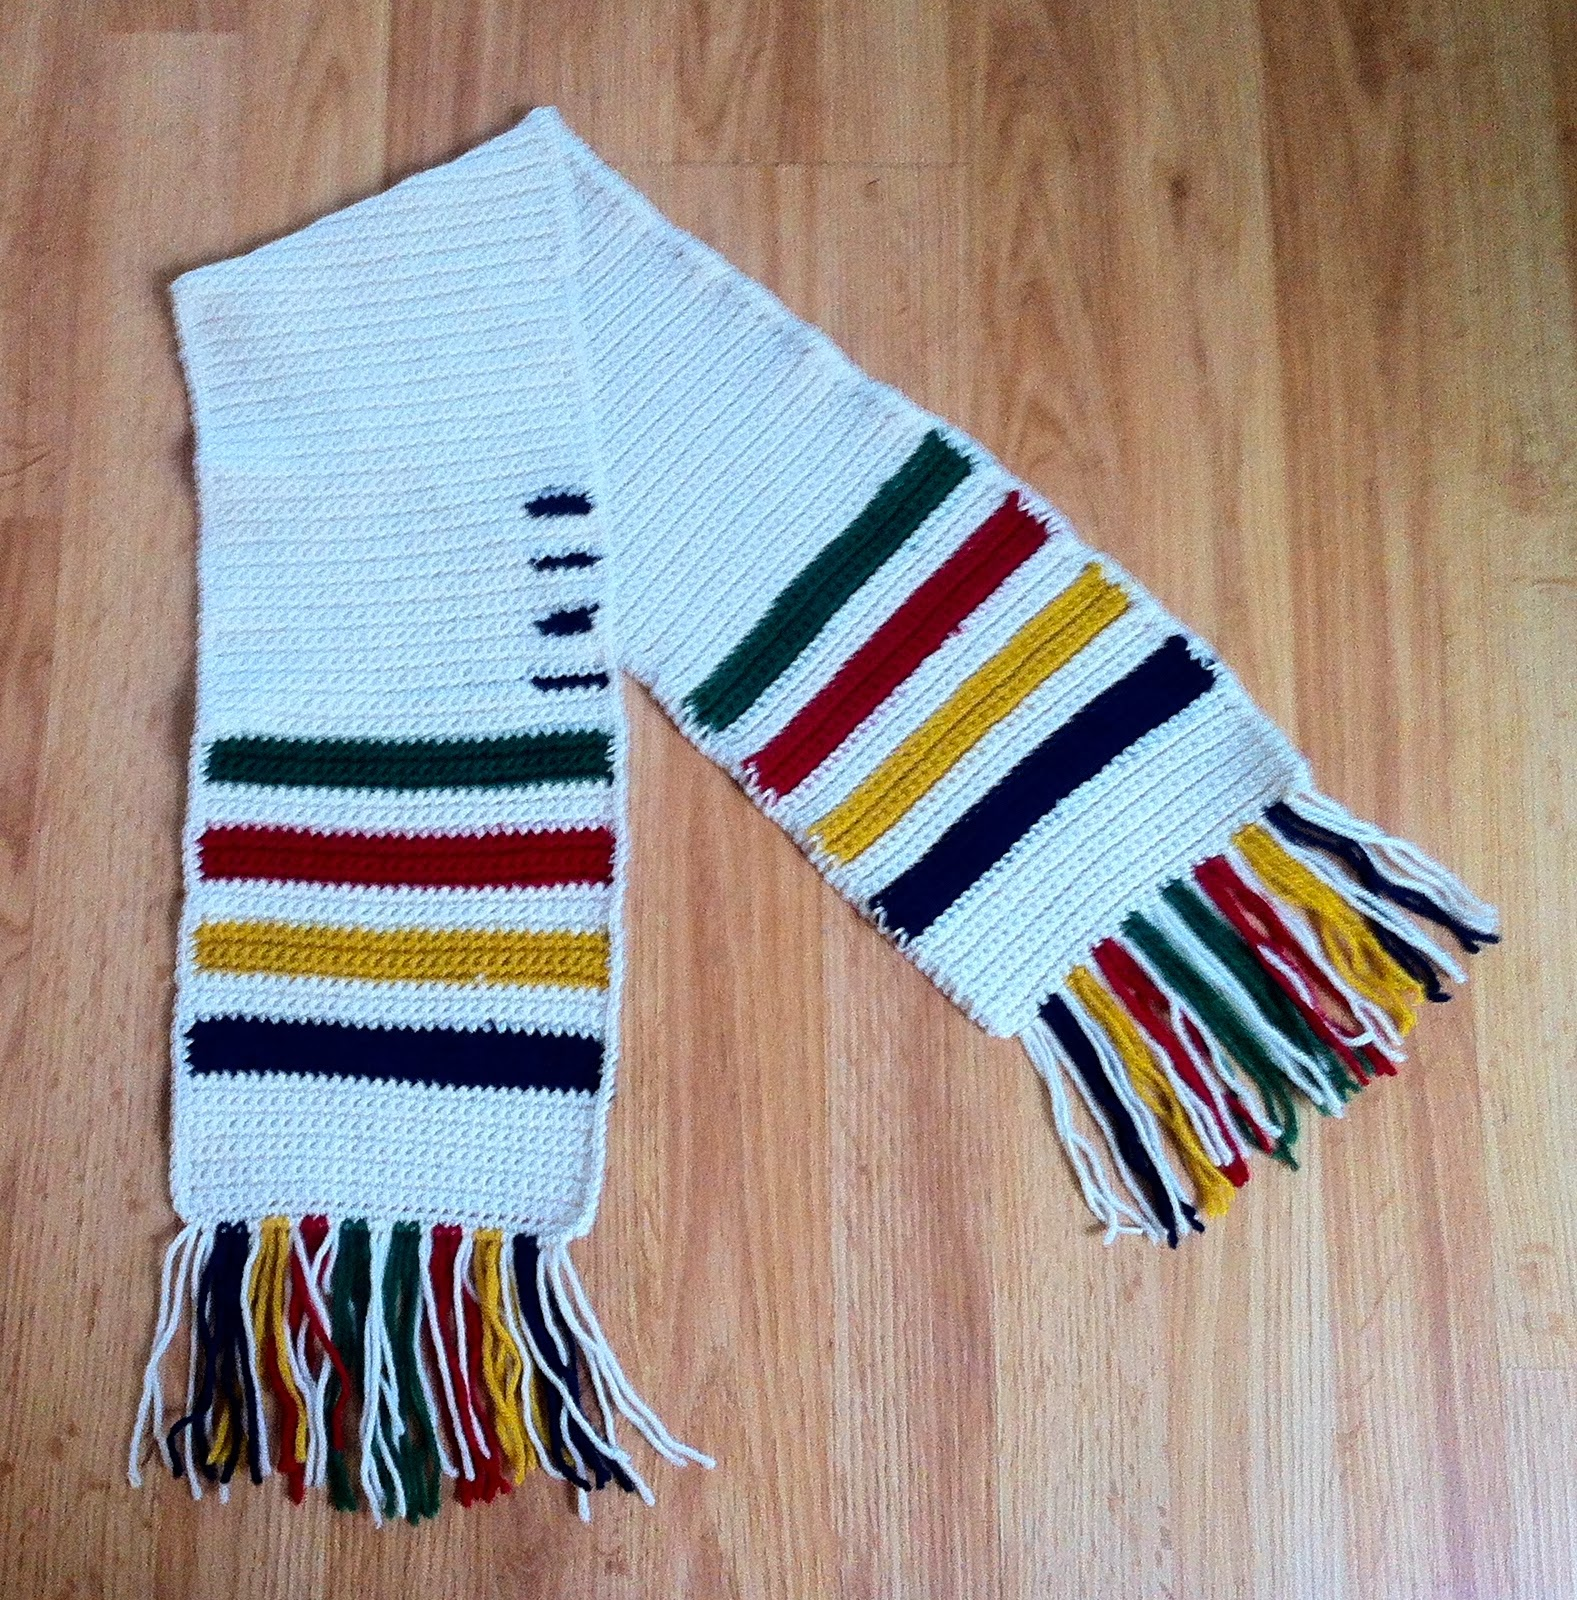 Knitting Pattern For Hudson Bay Blanket : Hudsons Bay Blanket Crochet Scarf The Way I Crochet